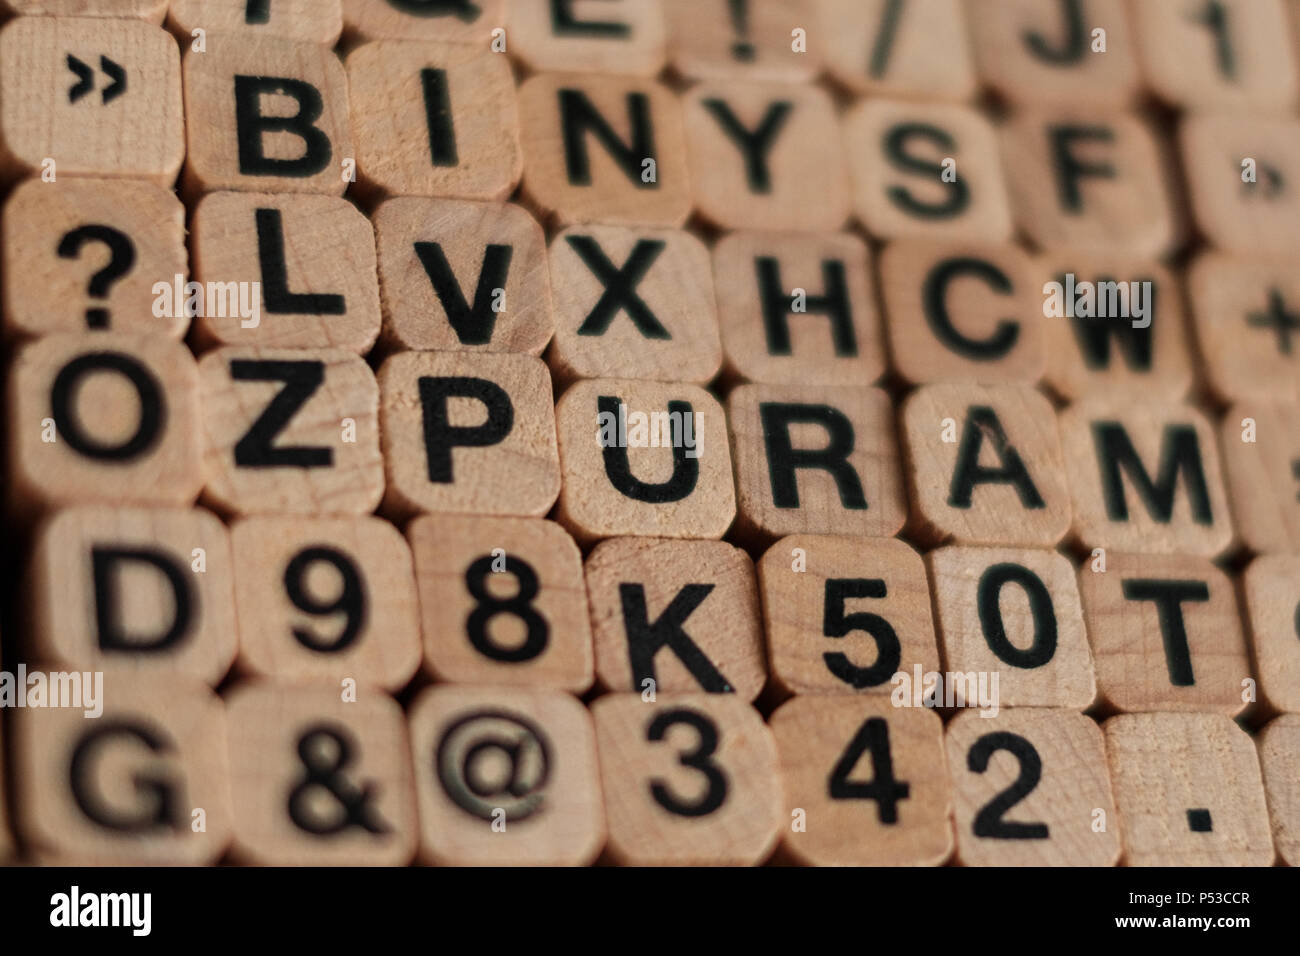 Typeset Letters Stock Photos & Typeset Letters Stock Images